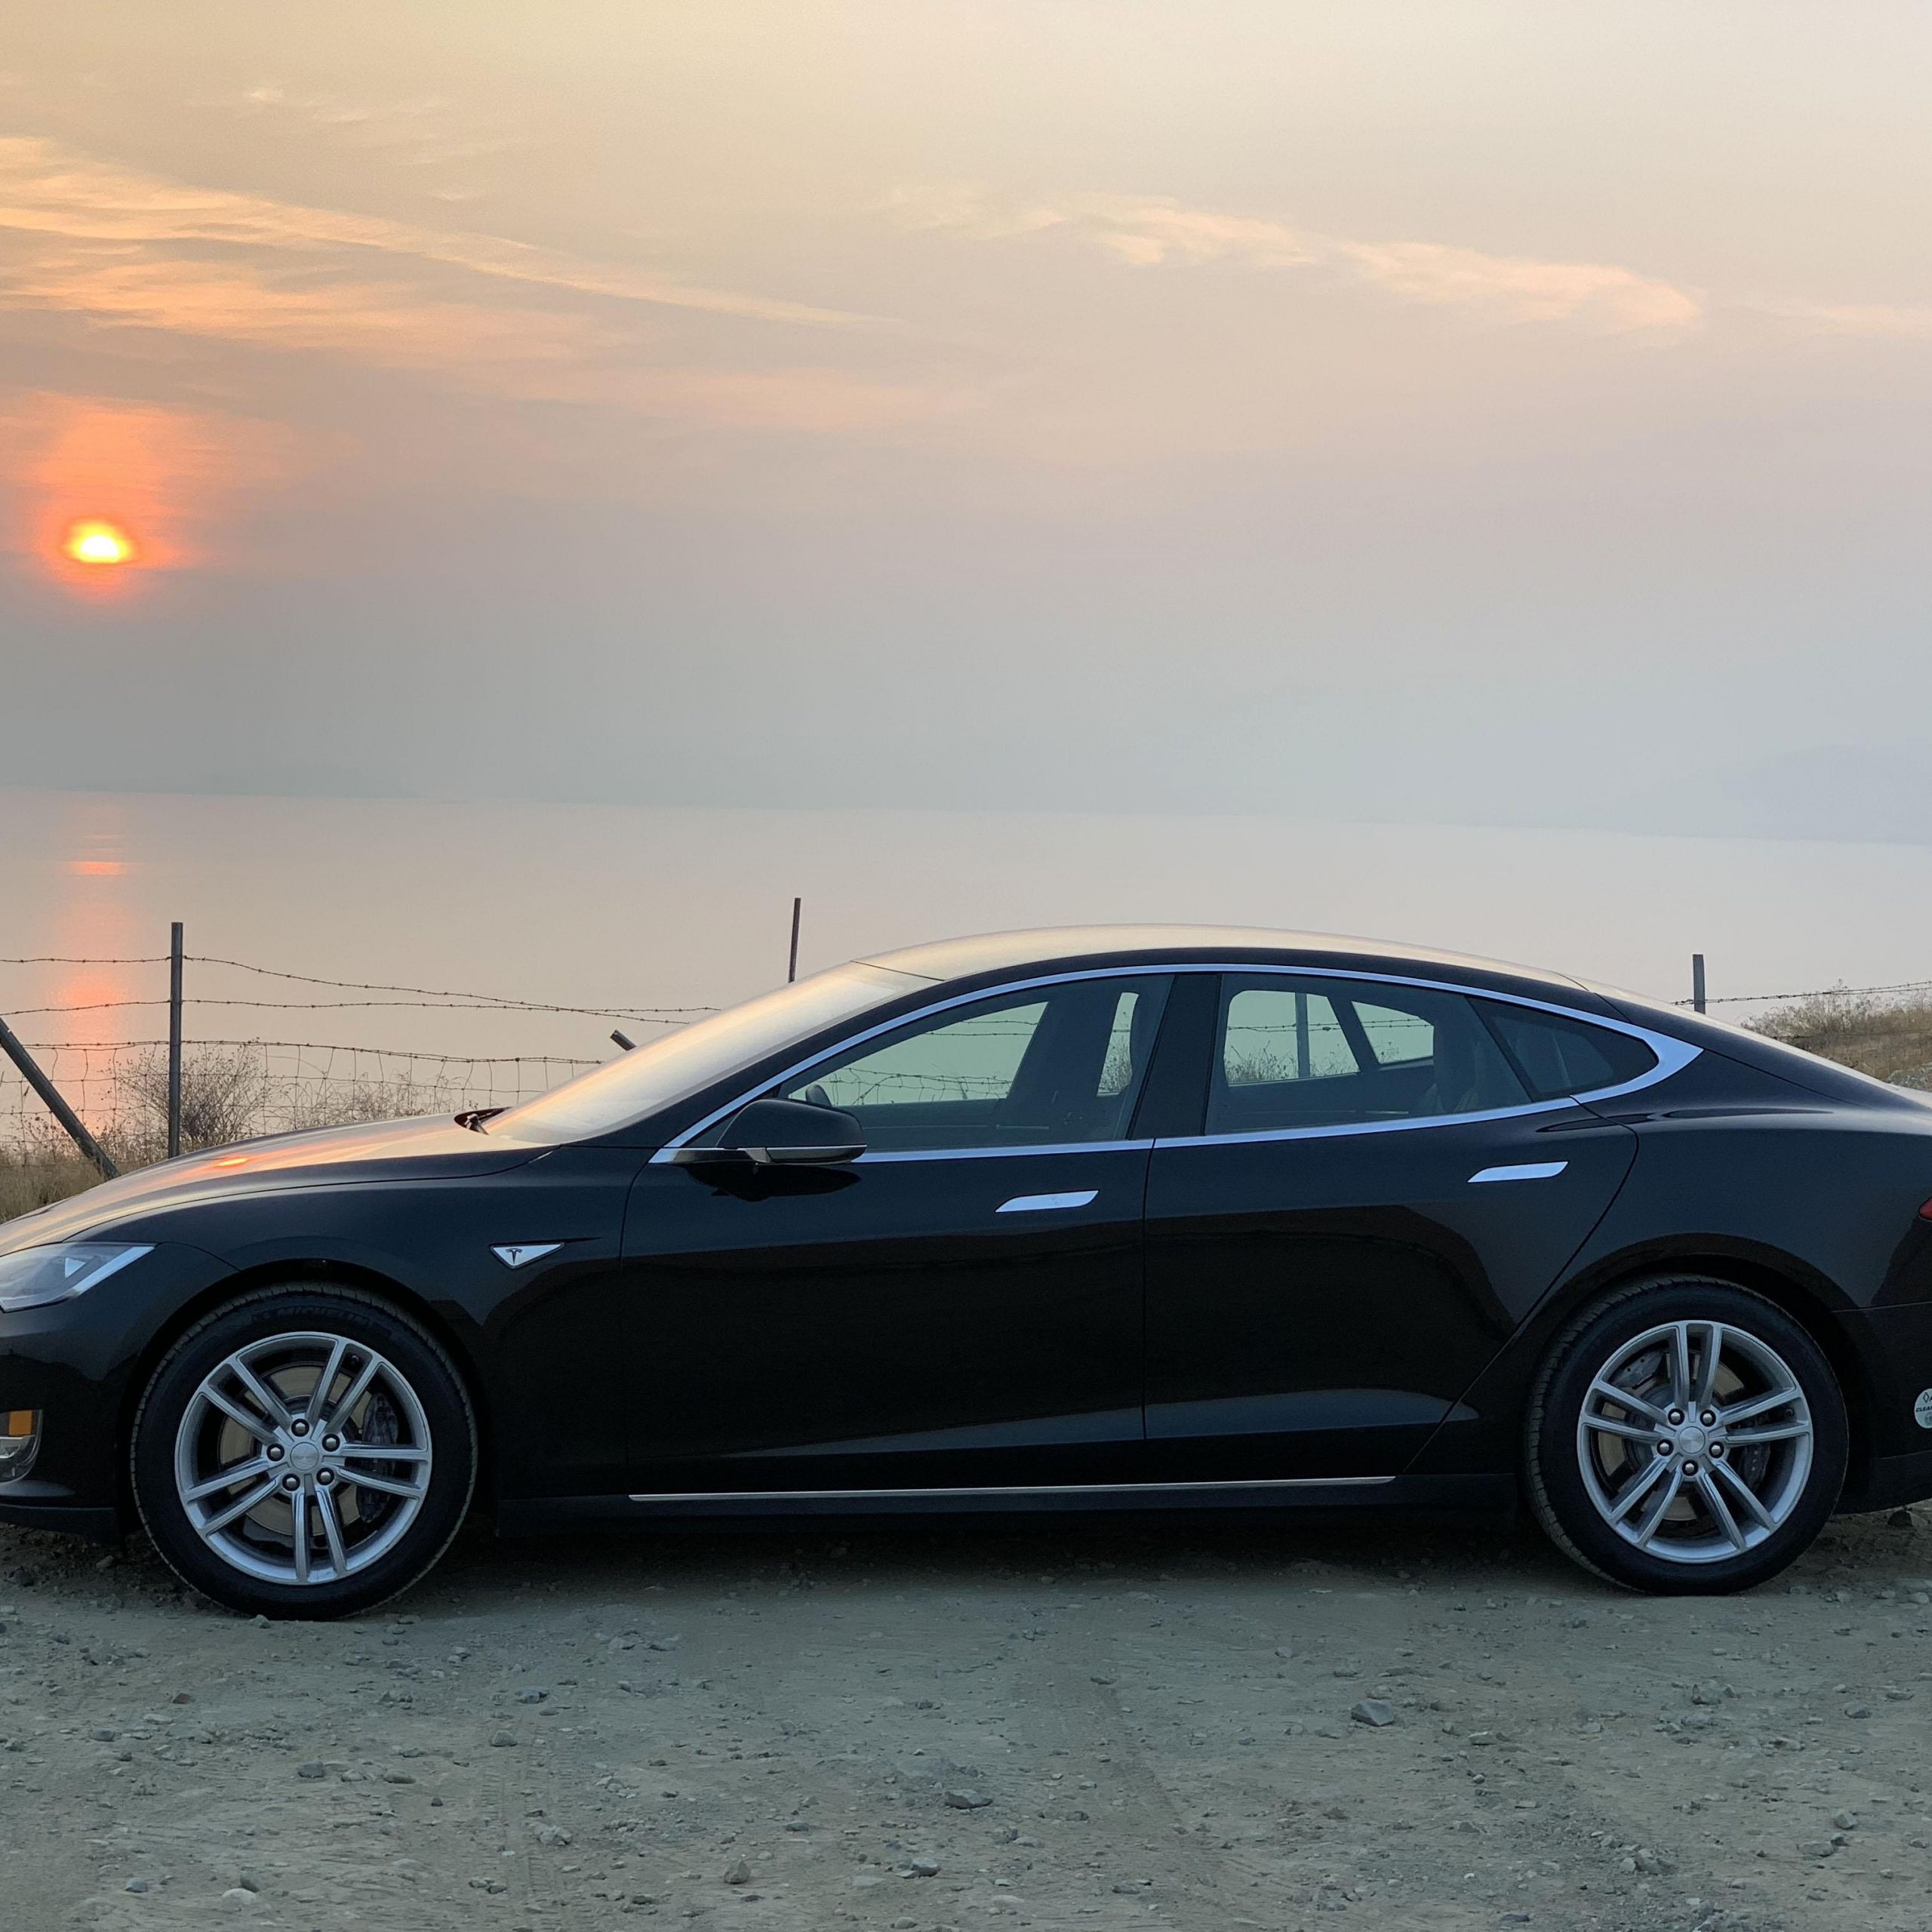 Tesla Cpo Unique Update Just Drove This Cpo 2700 Miles Back Home Teslamotors